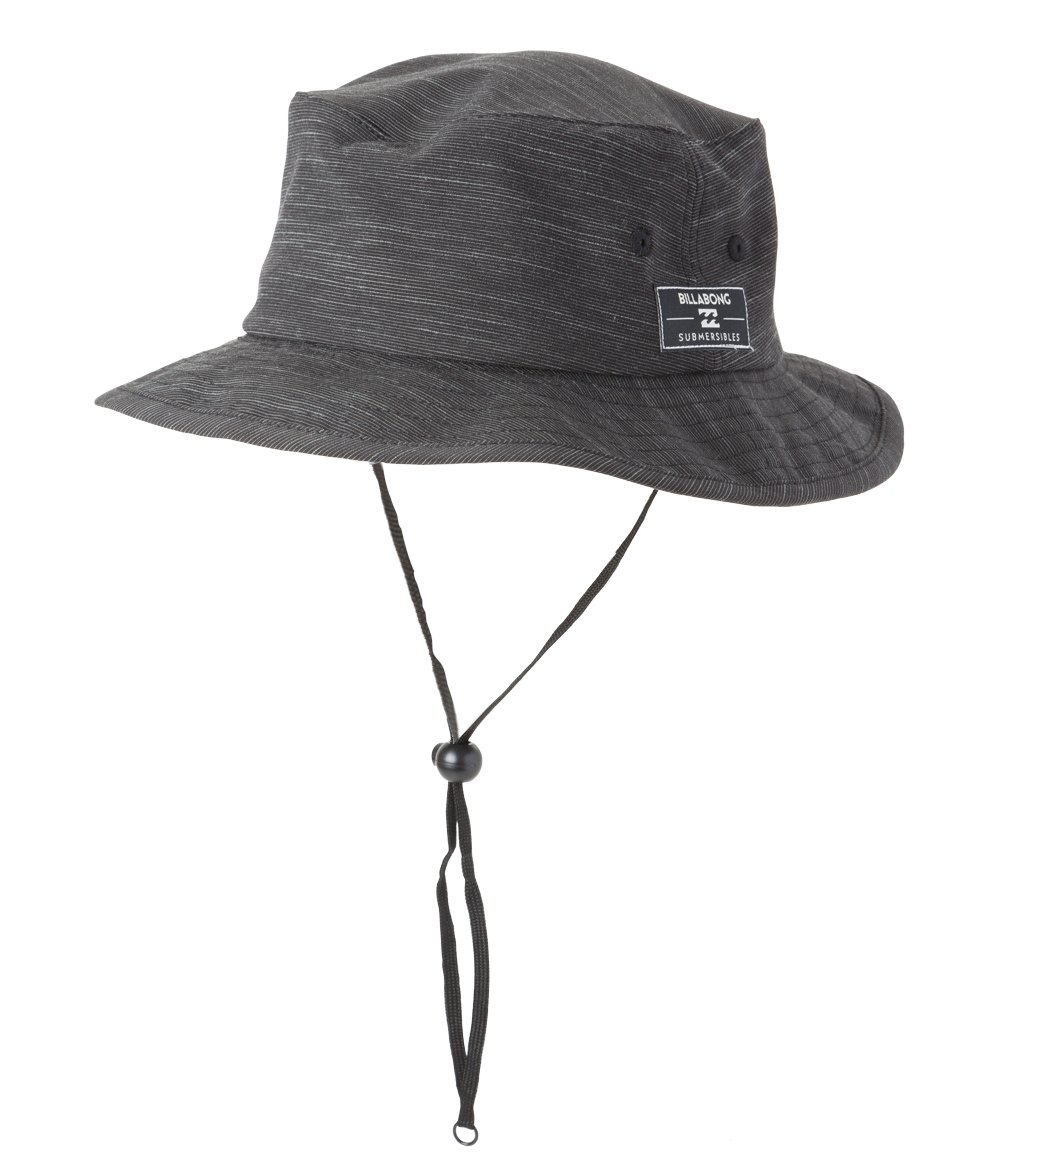 Billabong Men s Submersible Bucket Hat at SwimOutlet.com 25885903f4e